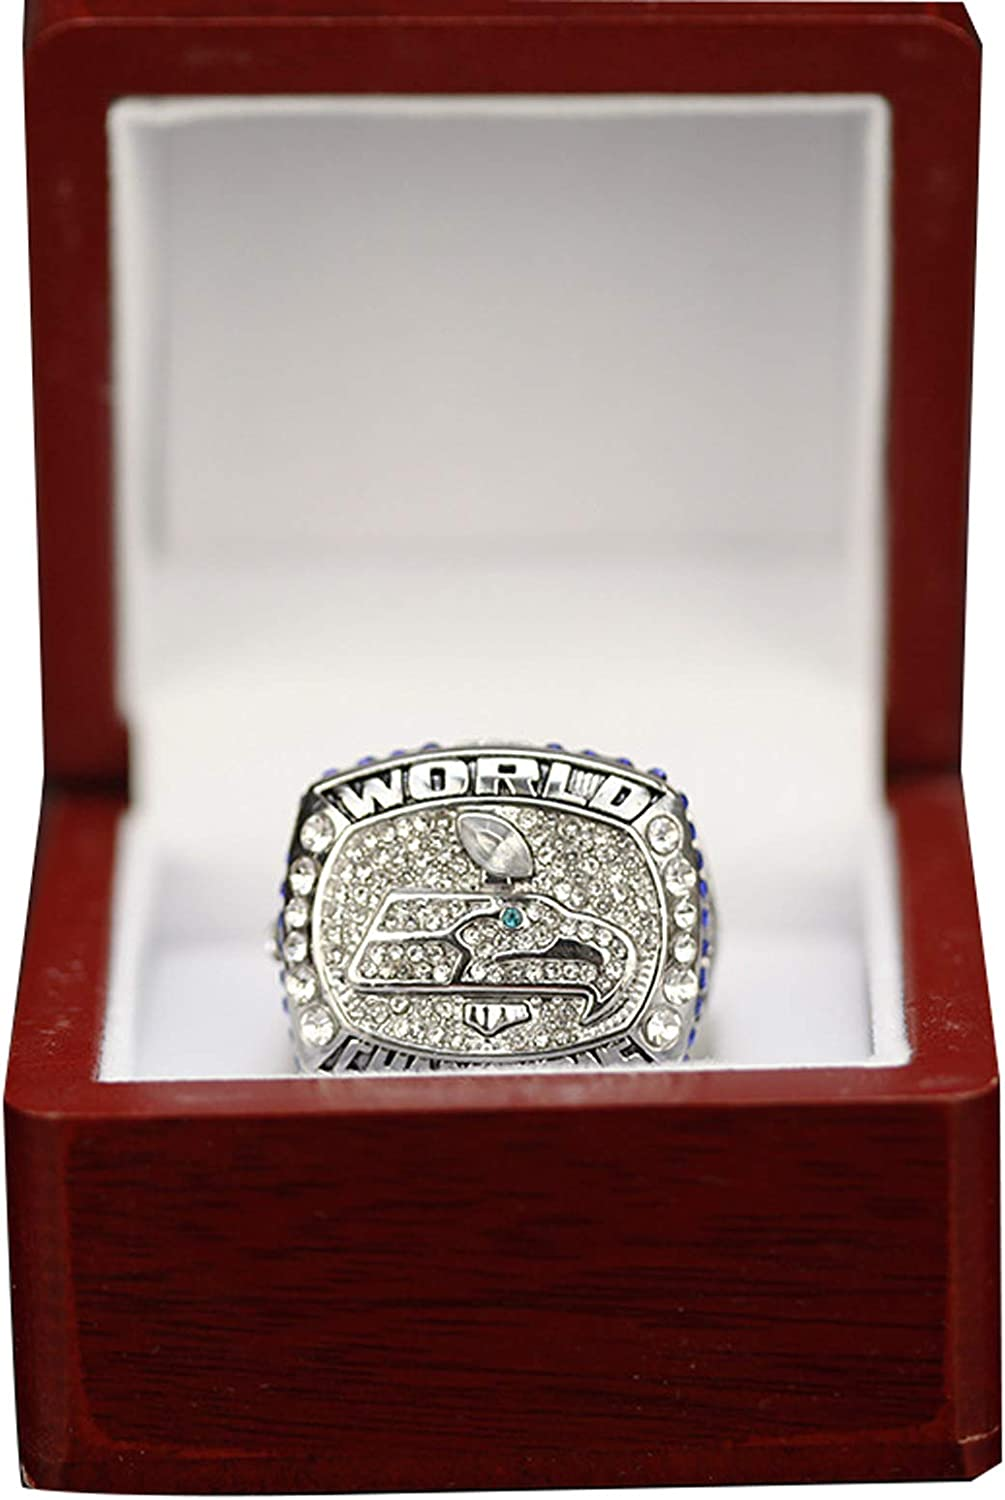 WOCTP 2013 Seahawks Rugby Championship Ring American Football Super Bowl Replica Creative Ring 11#